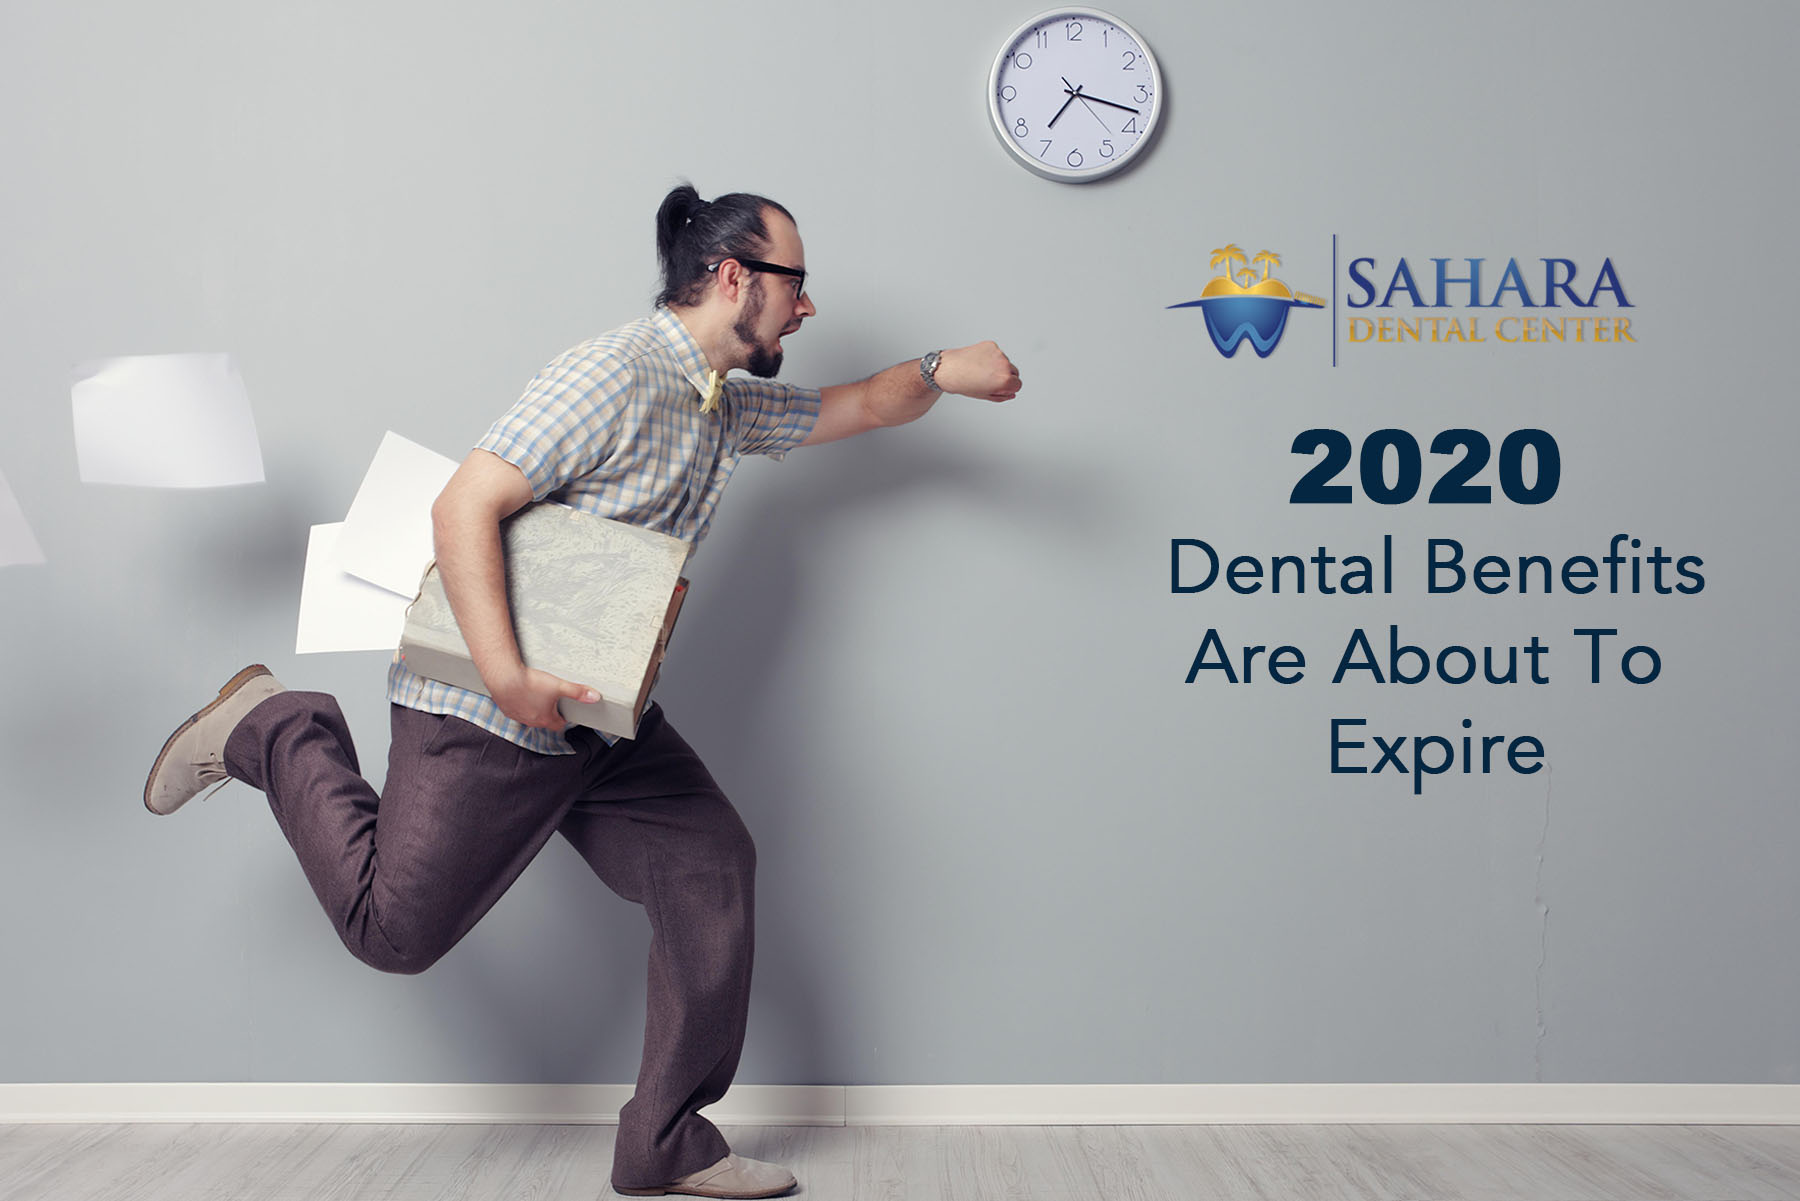 dental-benefits-time-is-running-out